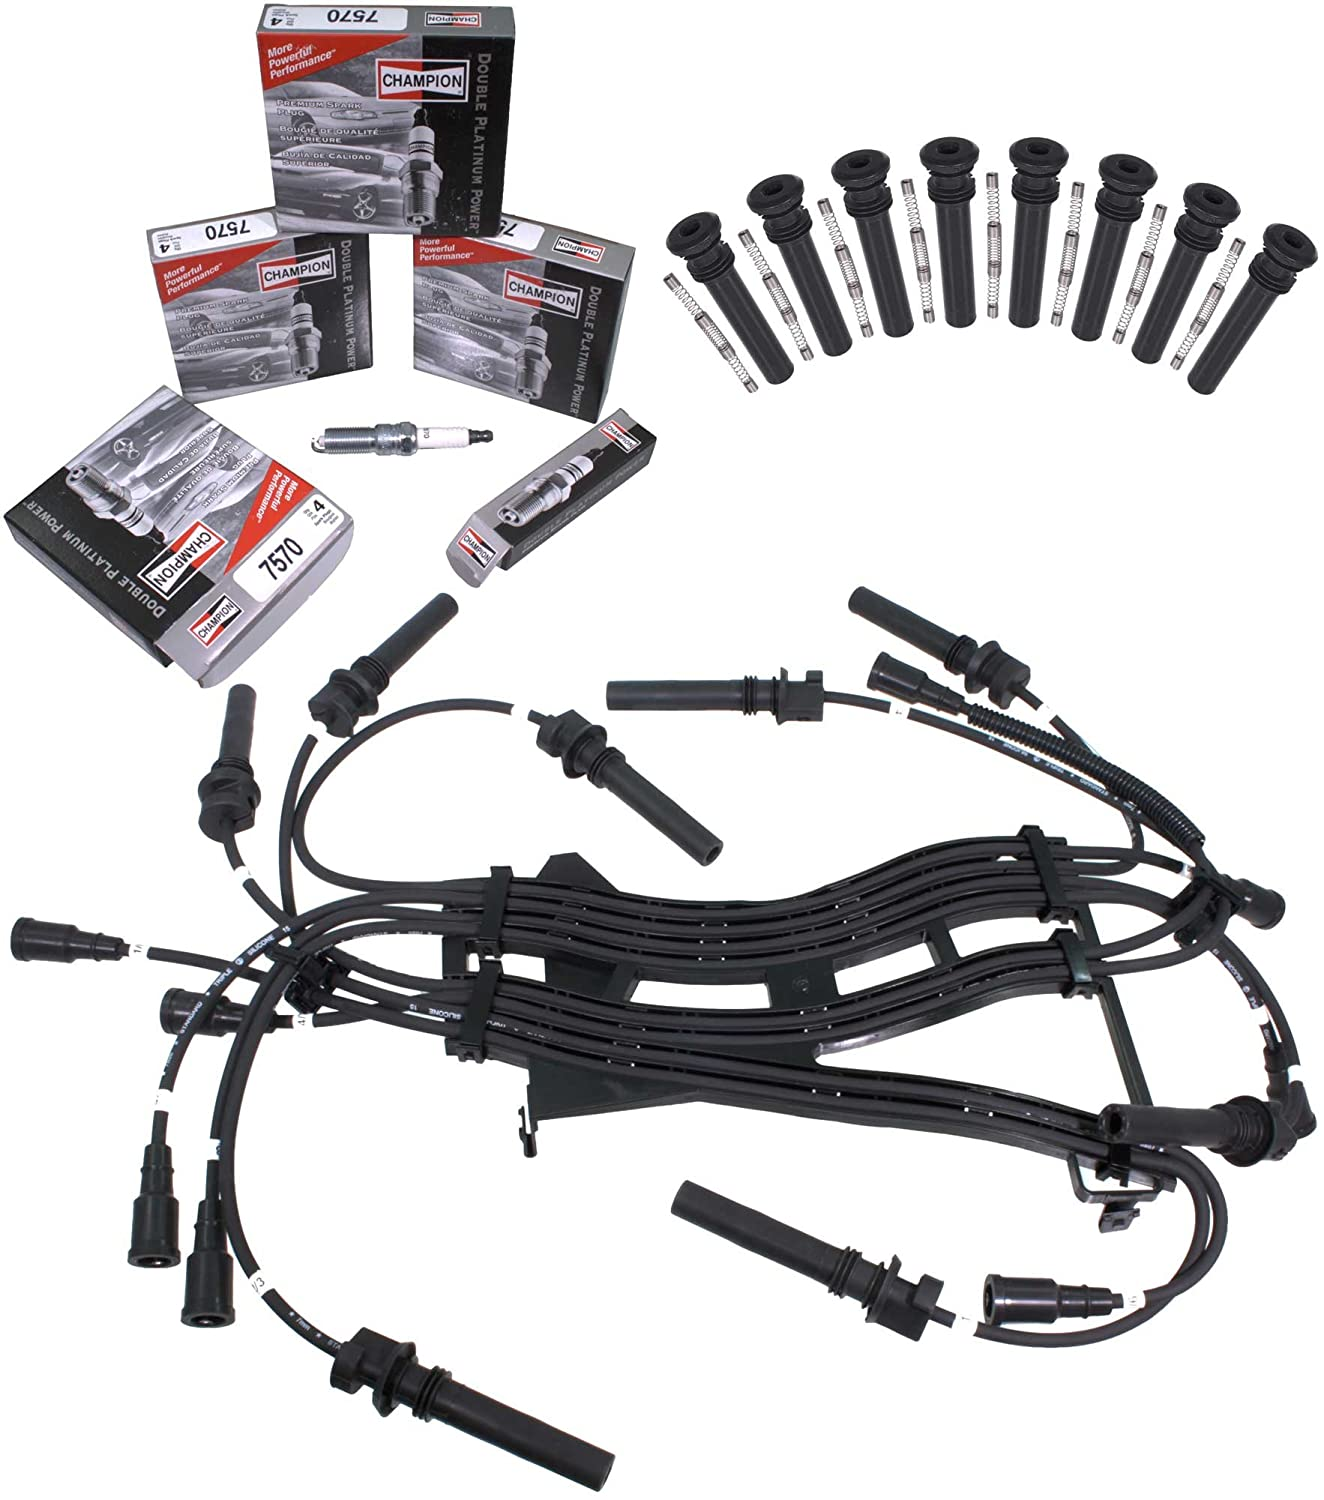 Apdty Tune Up Kit Includes 16 Oem Spark Plugs 05 Chrysler 300 Ignition Wiring Diagram Wires Cop Coil On Plug Boots Fits 2003 2005 Dodge Ram Pickups With 57l Hemi